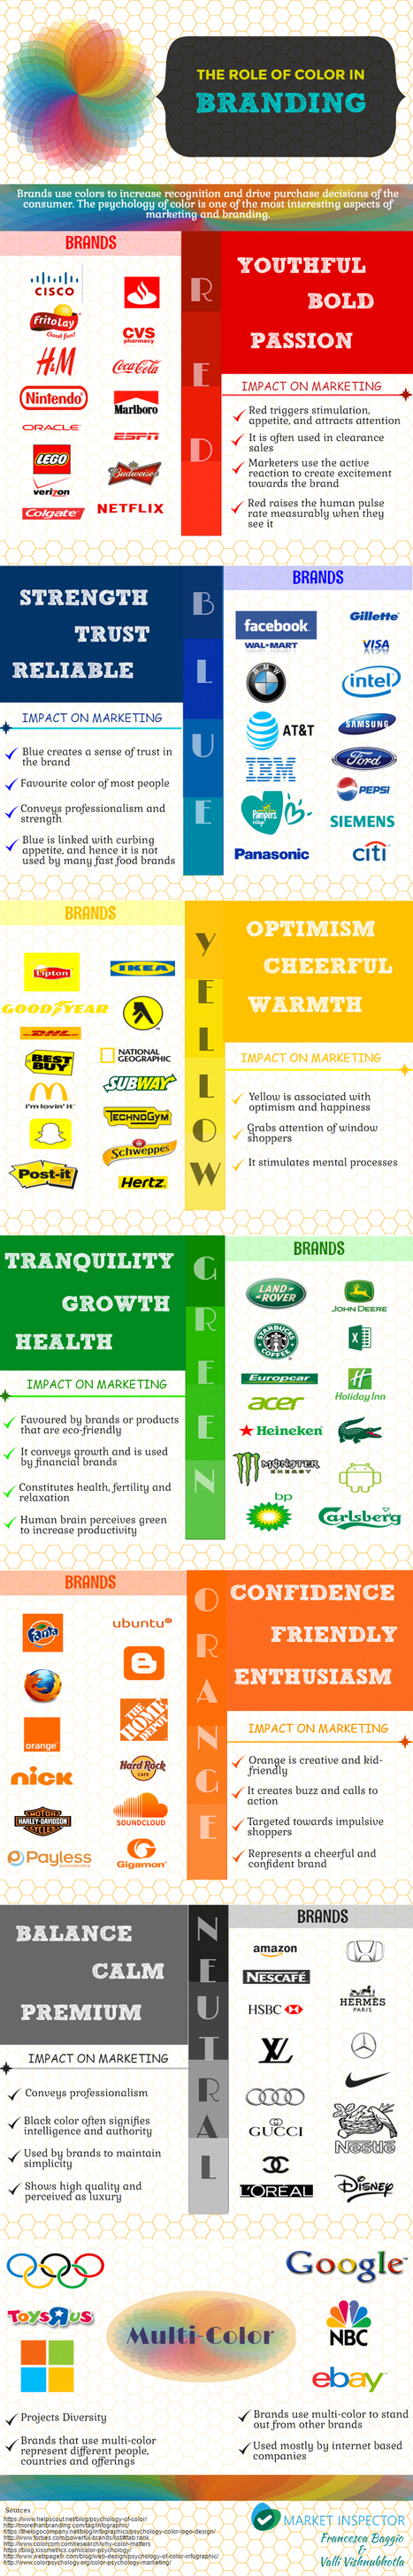 The Role of Color in Branding #Infographic | Marketing Tips | Scoop.it